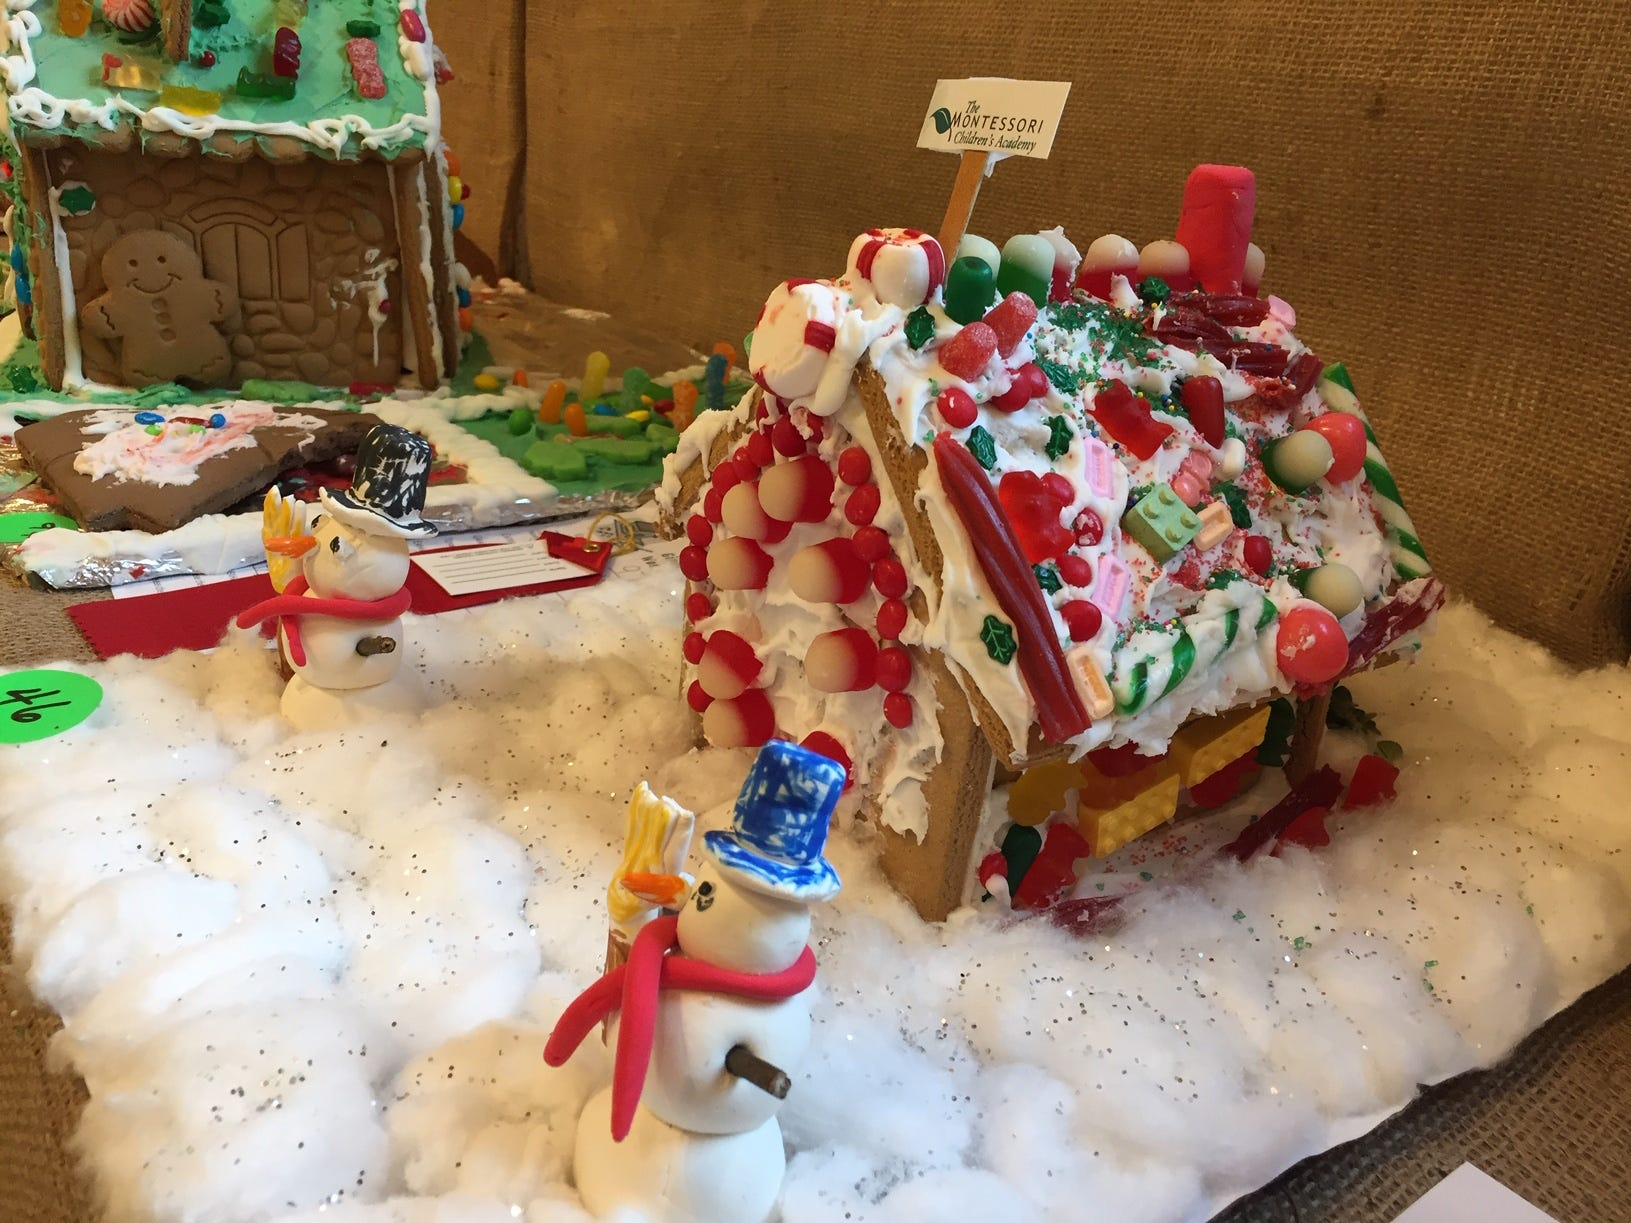 """Snowman's house"" by Montessori Children's Academy in Morristown, grade K, at the 2018 Gingerbread Wonderland at the Frelinghuysen Arboretum. School category."